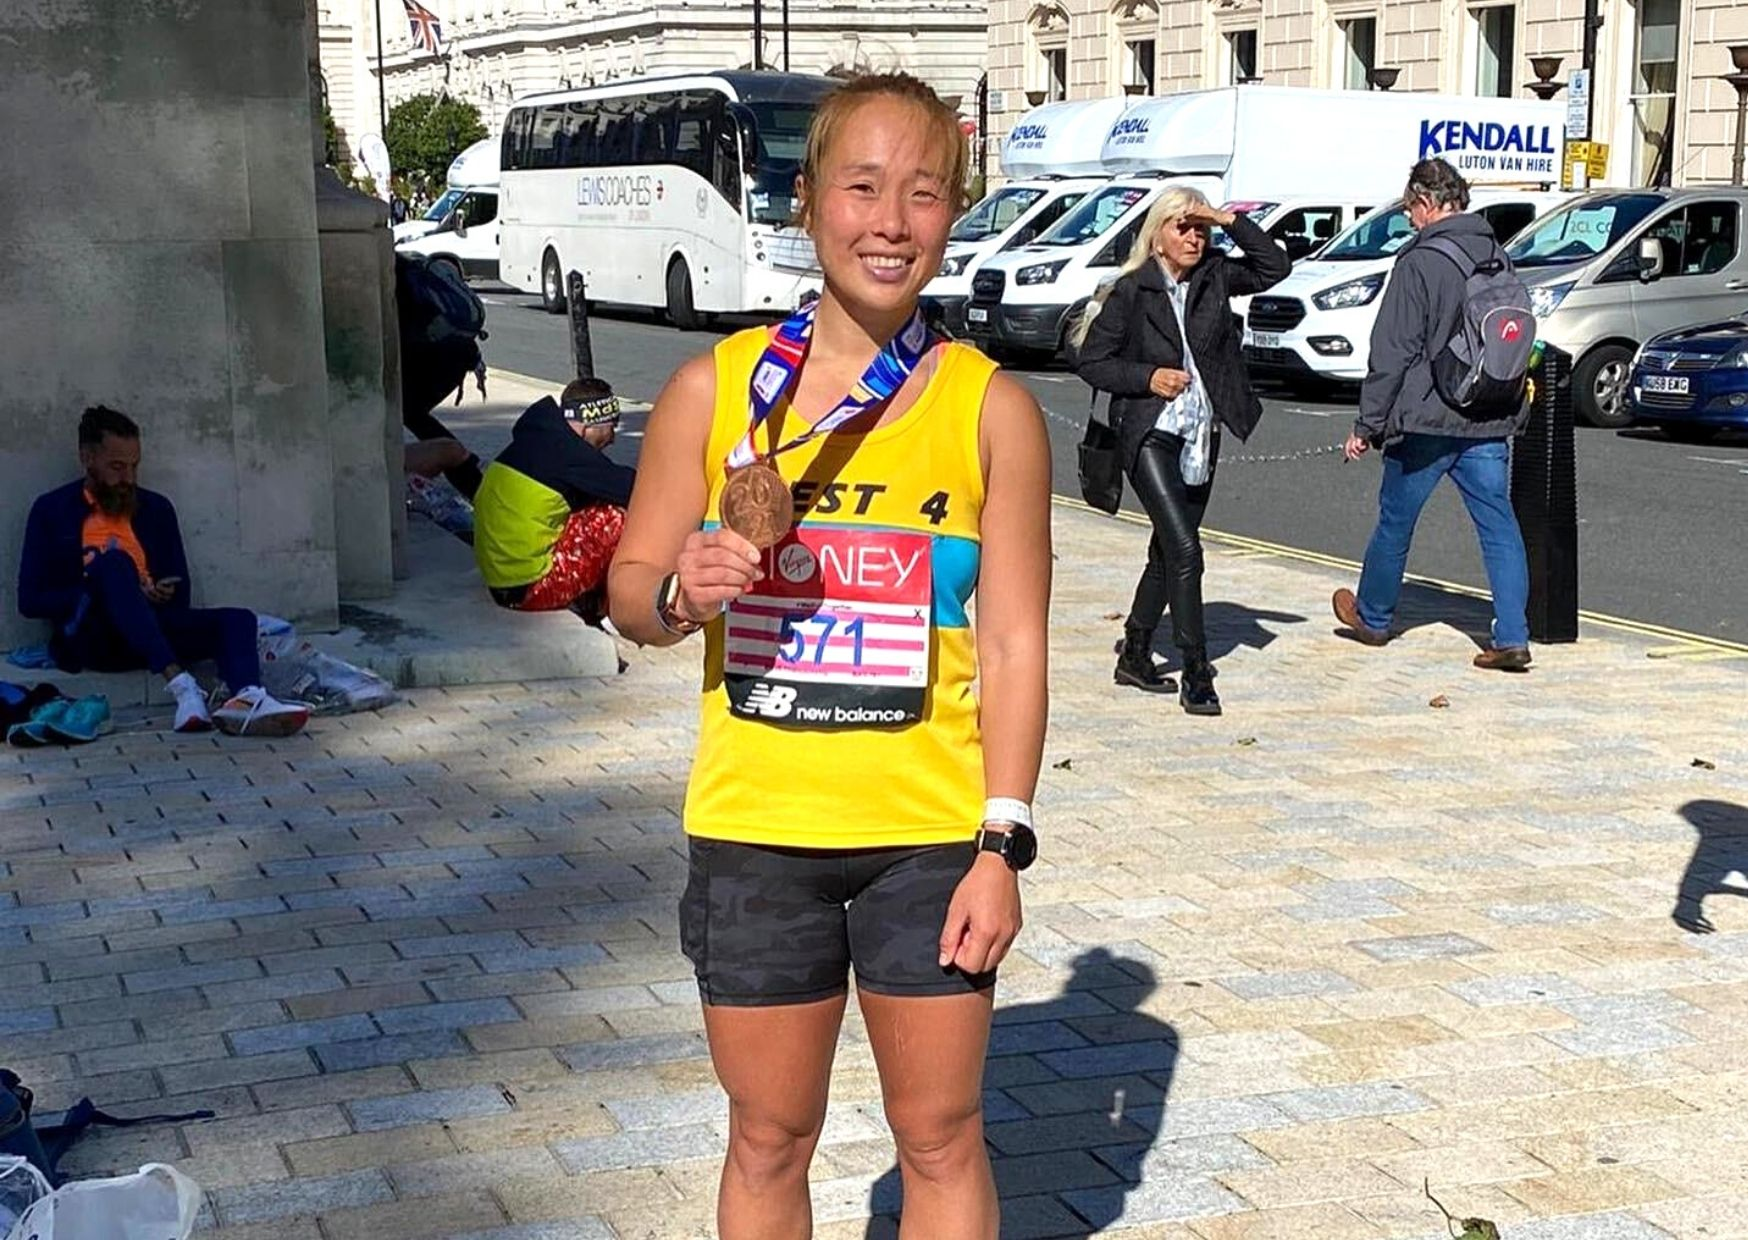 pic of marathon runner after exercise improving her physical wellbeing